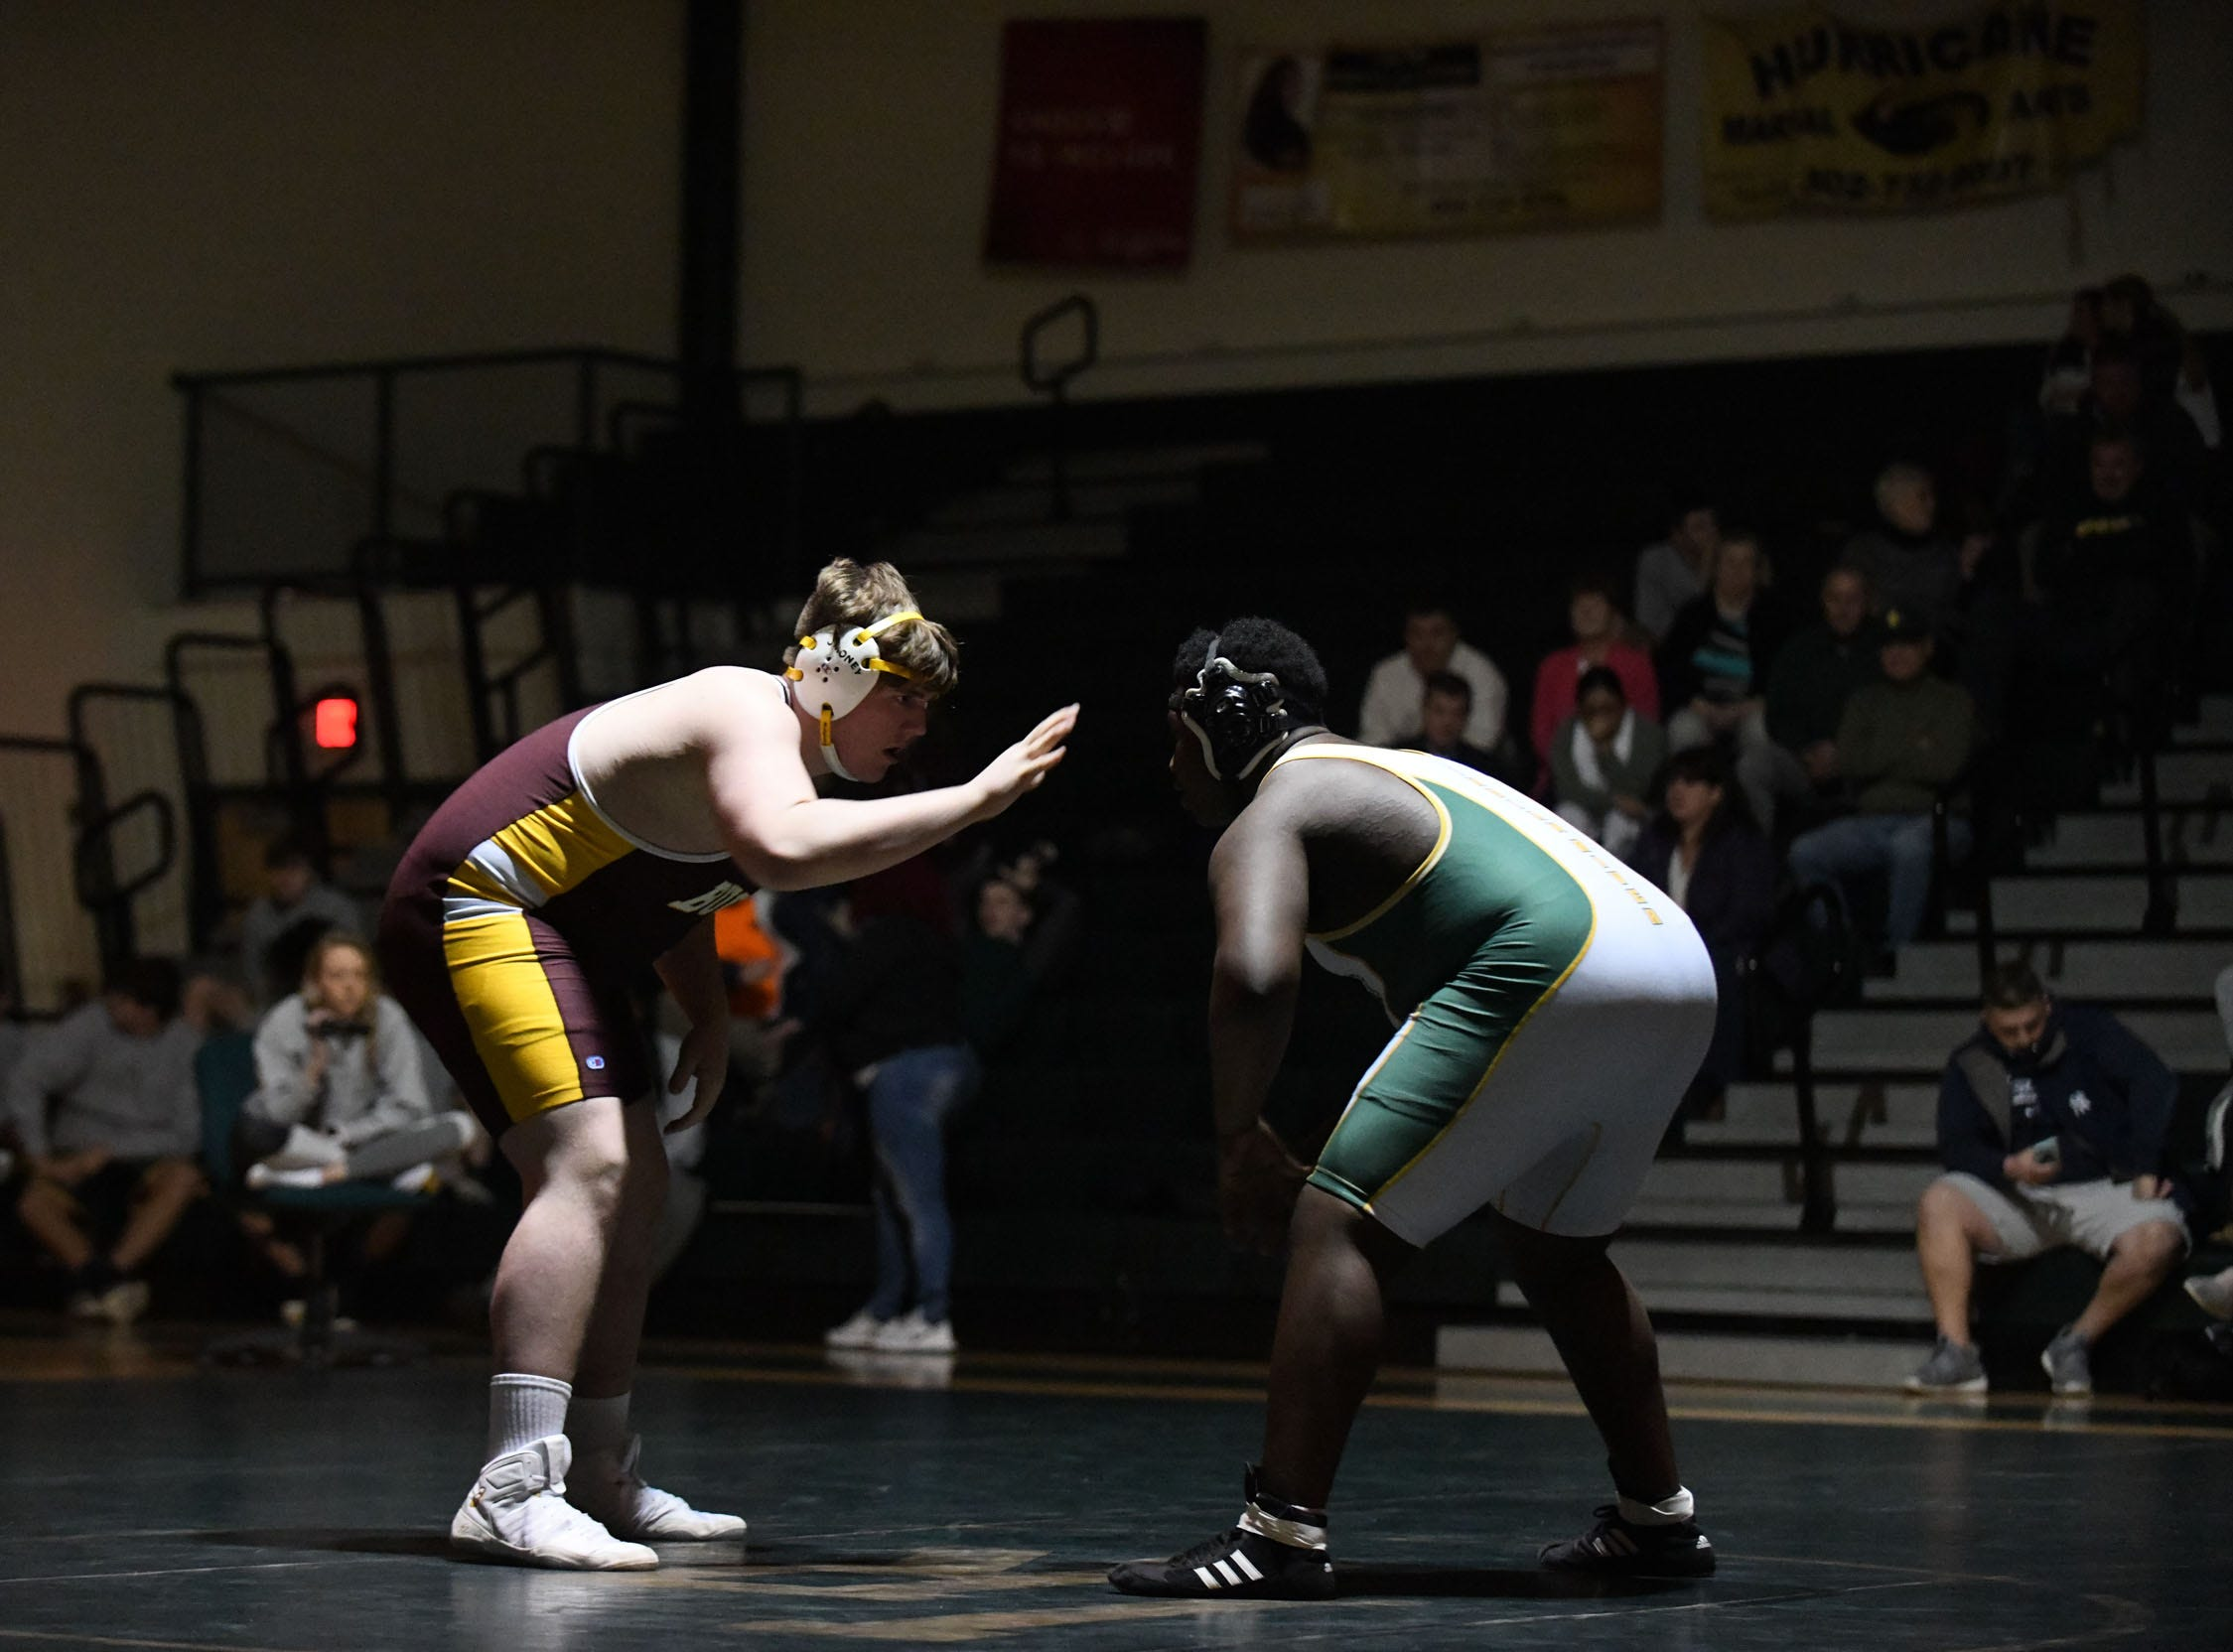 Indian River's R. Turner battled Milford's Jacob Bryant the 285lb match on Thursday, Jan 17, 2019 in Dagsboro, Del. Milford won the match 53-15.